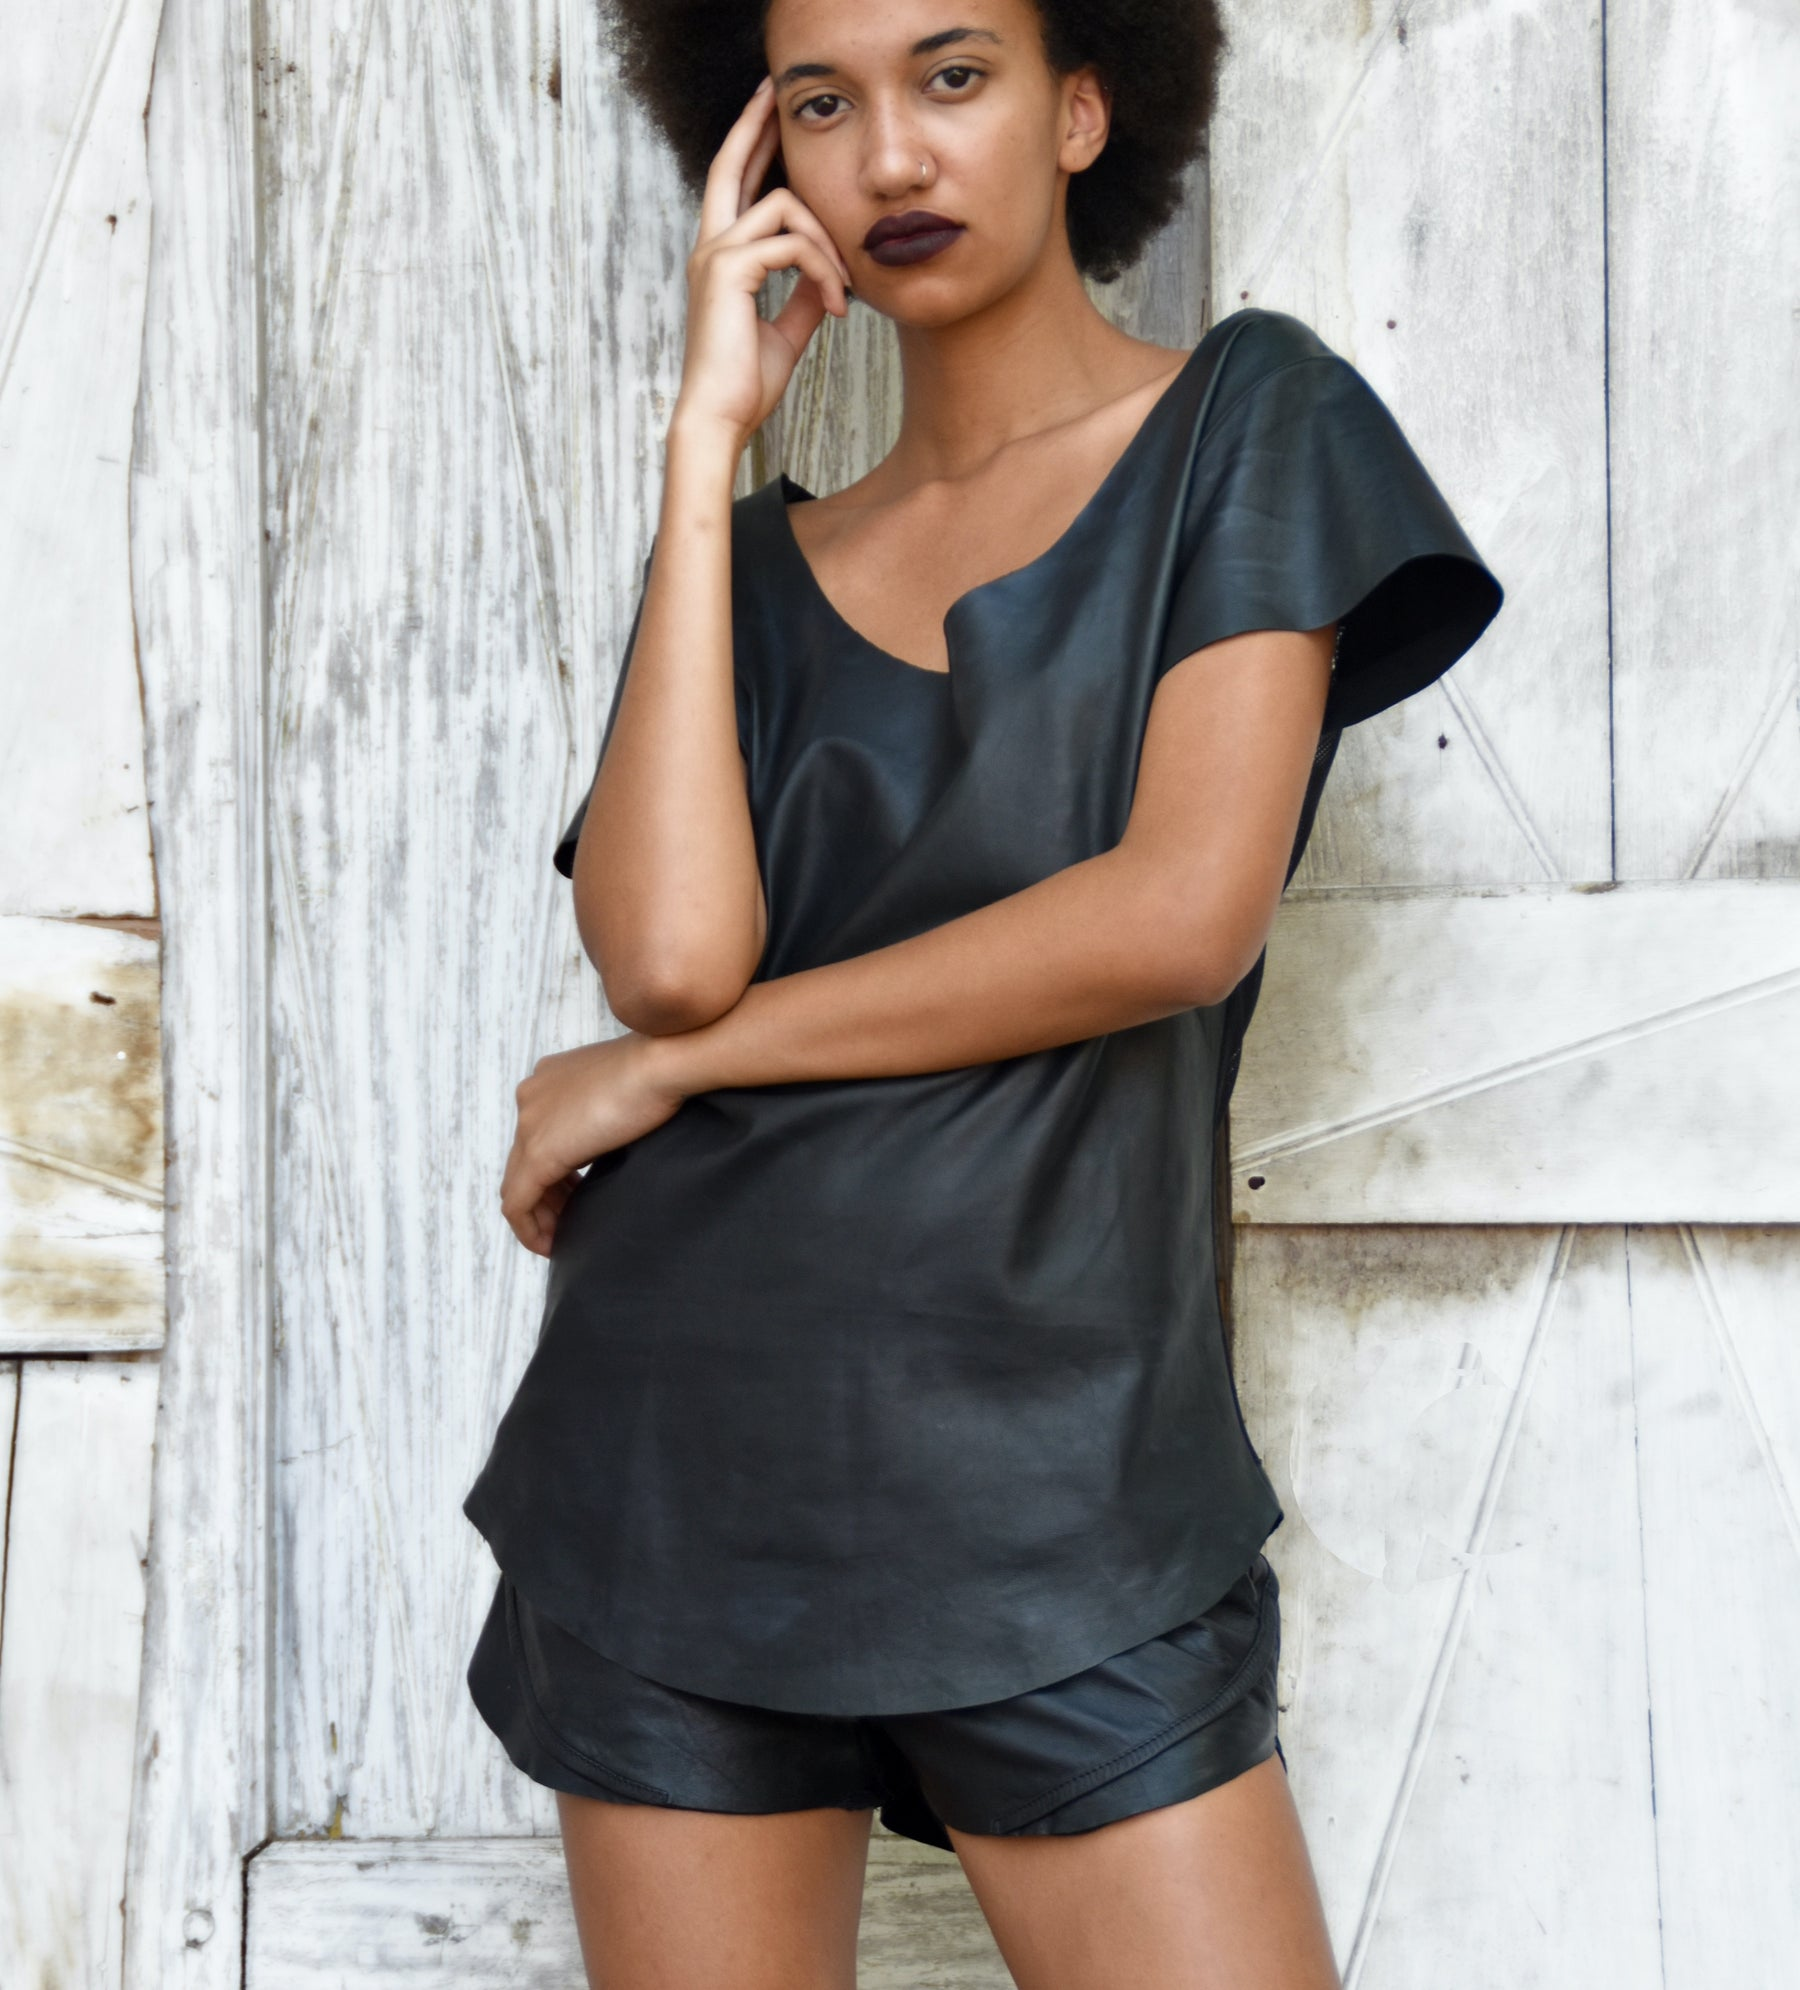 leather t-shirt by Patricia Bos